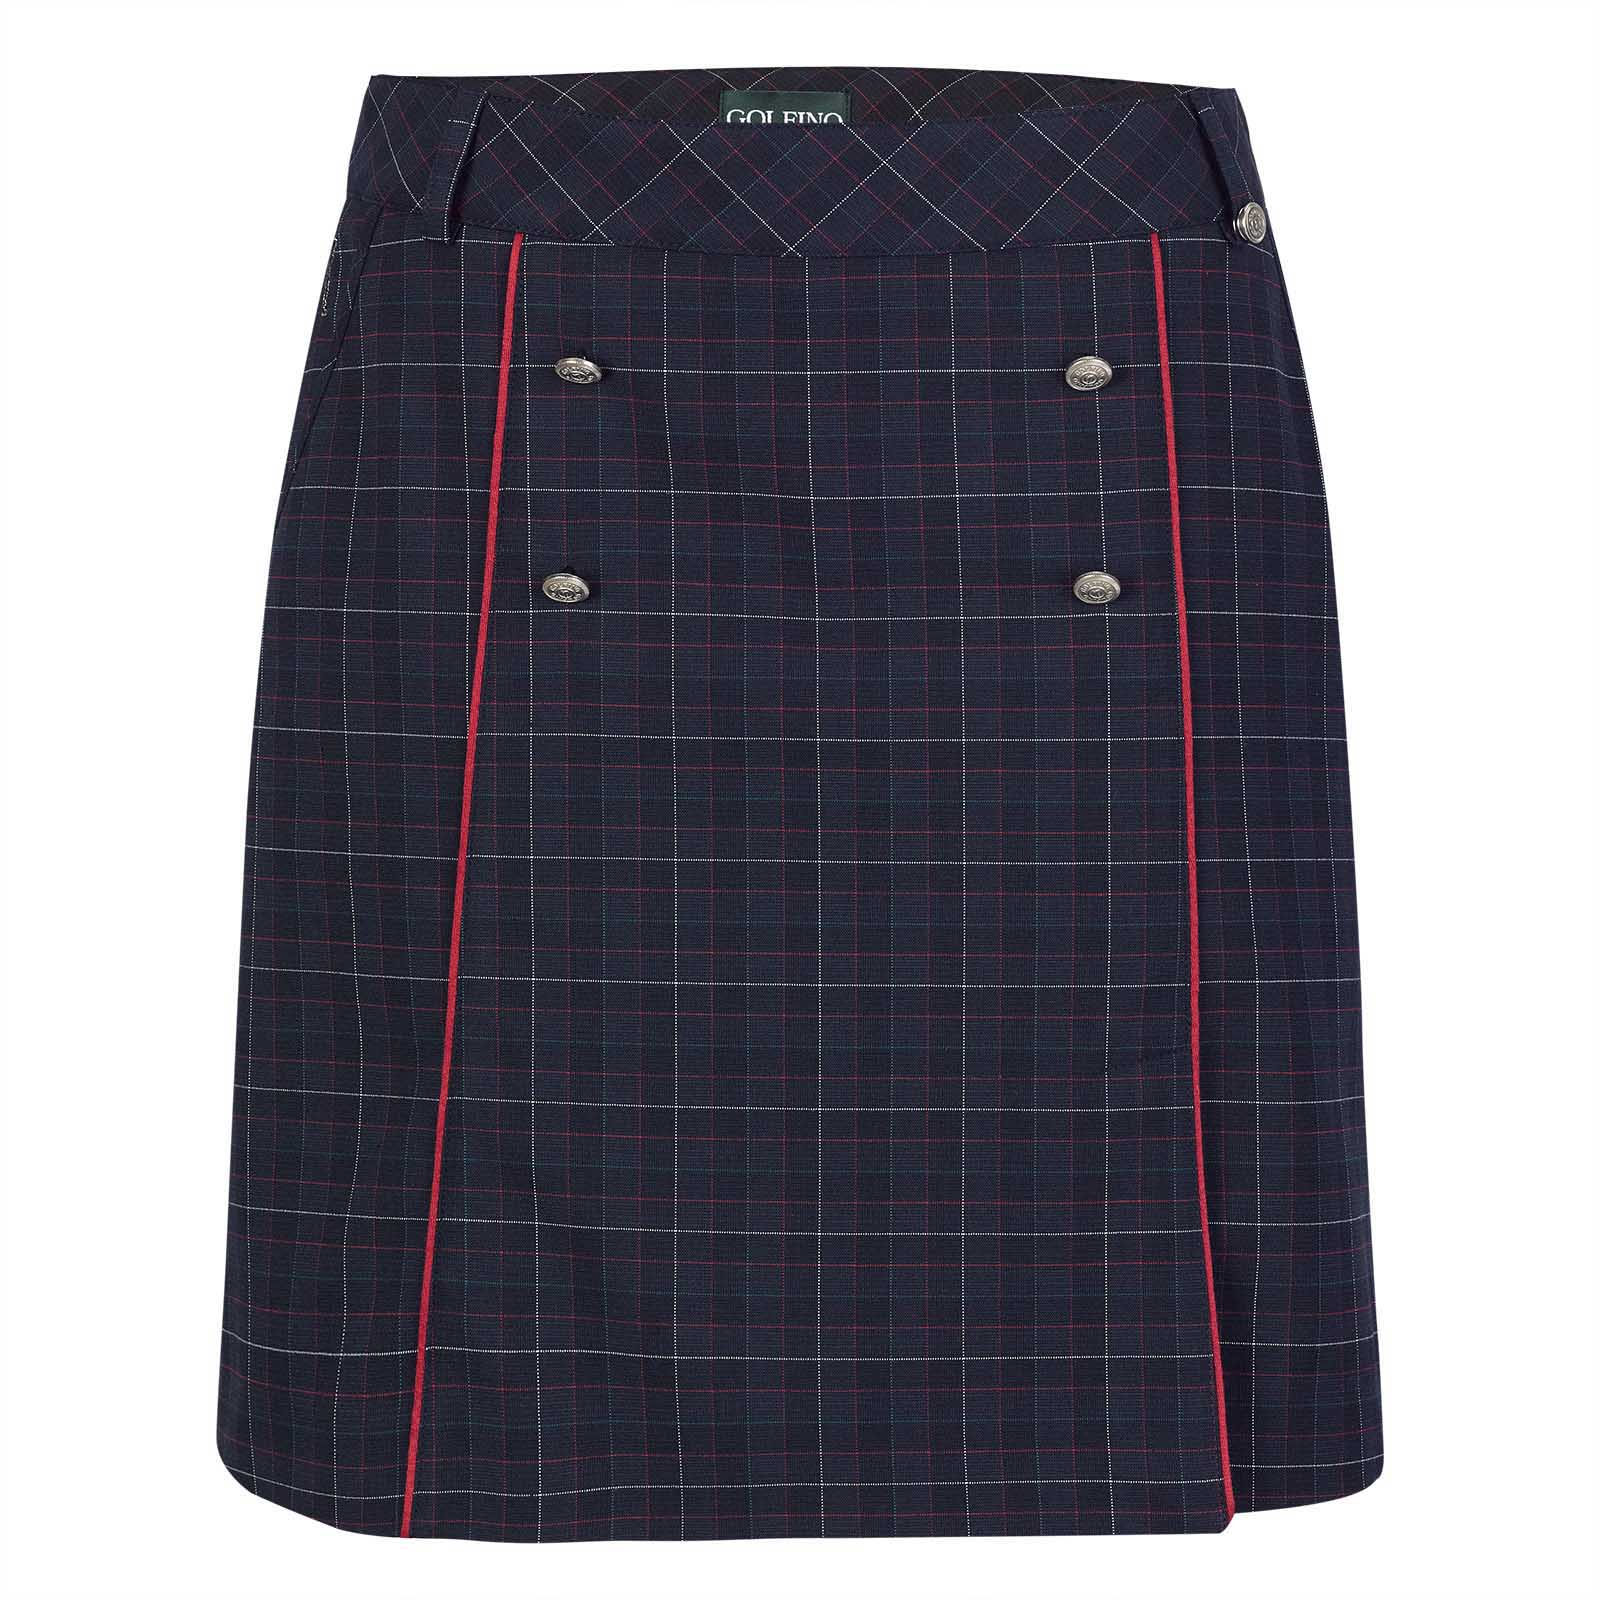 Ladies' check golf skort made from soft stretch material with integrated shorts